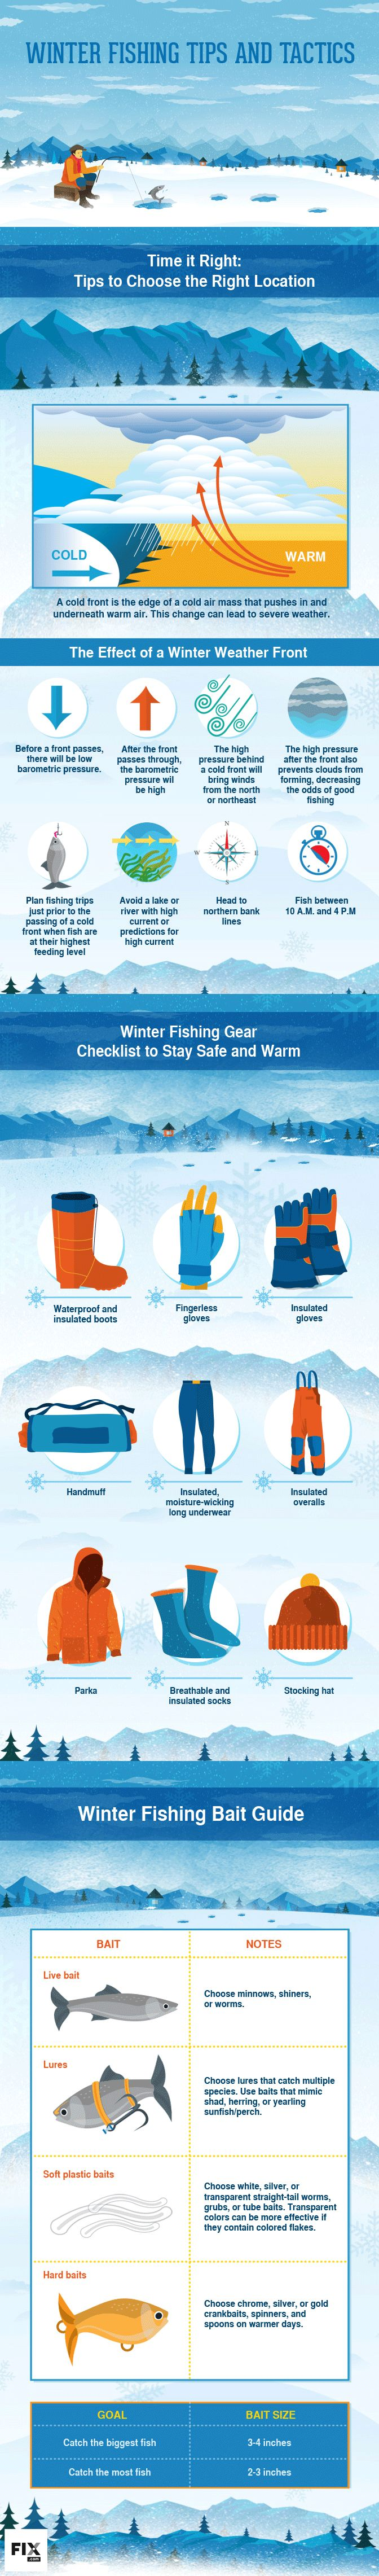 Winter Fishing Tips and Tactics #infographic #Winter #Fishing #Tips